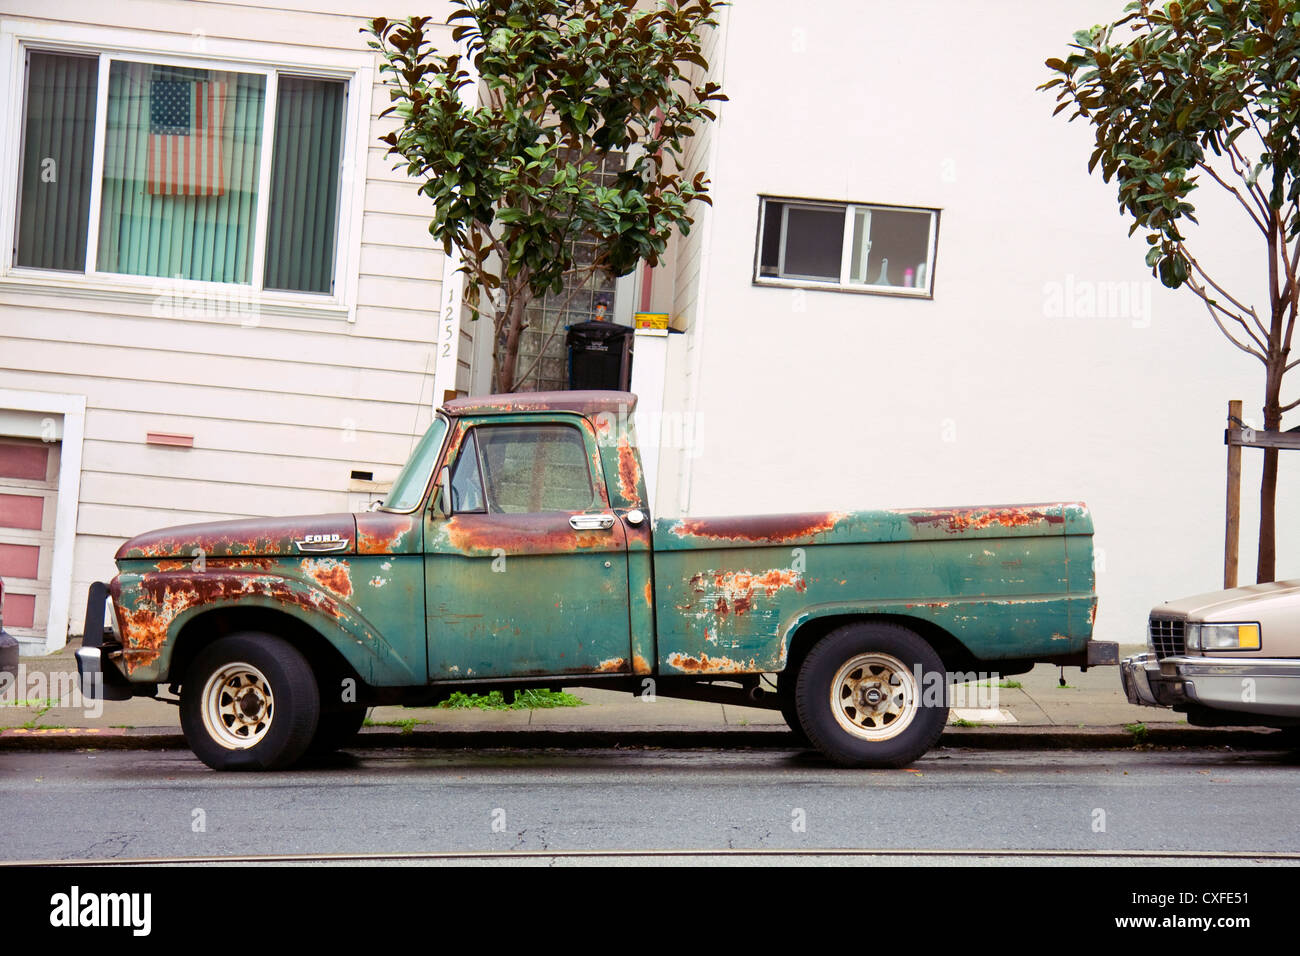 Rusty Pickup Truck Stock Photos & Rusty Pickup Truck Stock Images ...